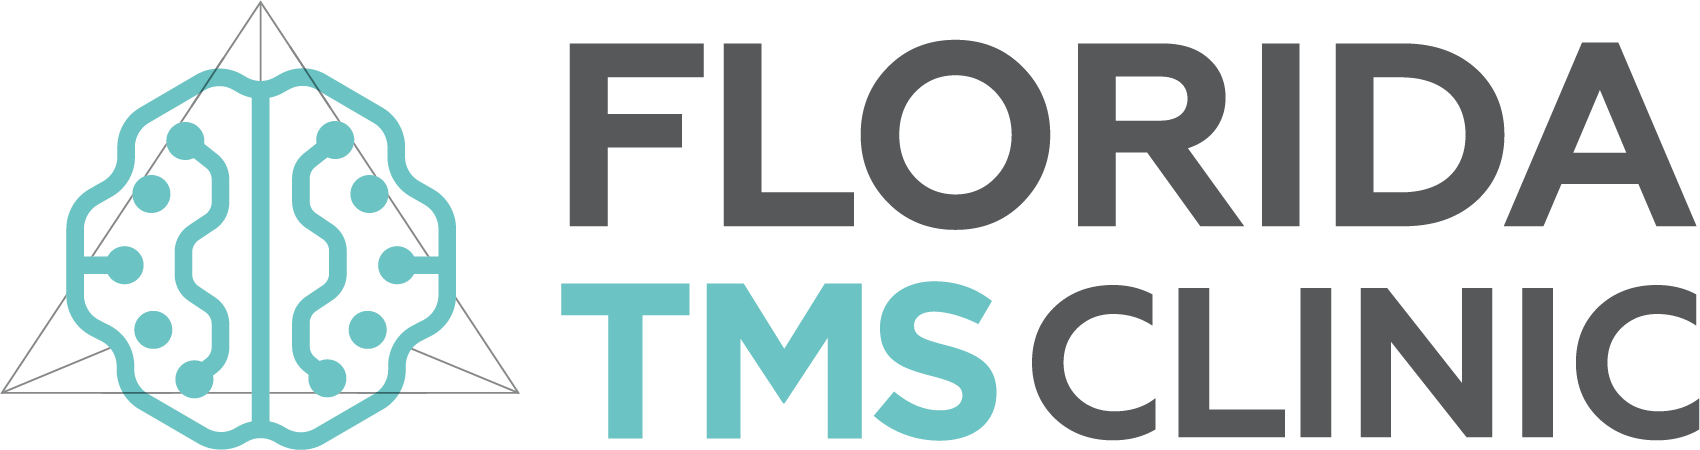 FLORIDA TMS CLINIC Offers The Best TMS Therapy In The Tampa Bay Area